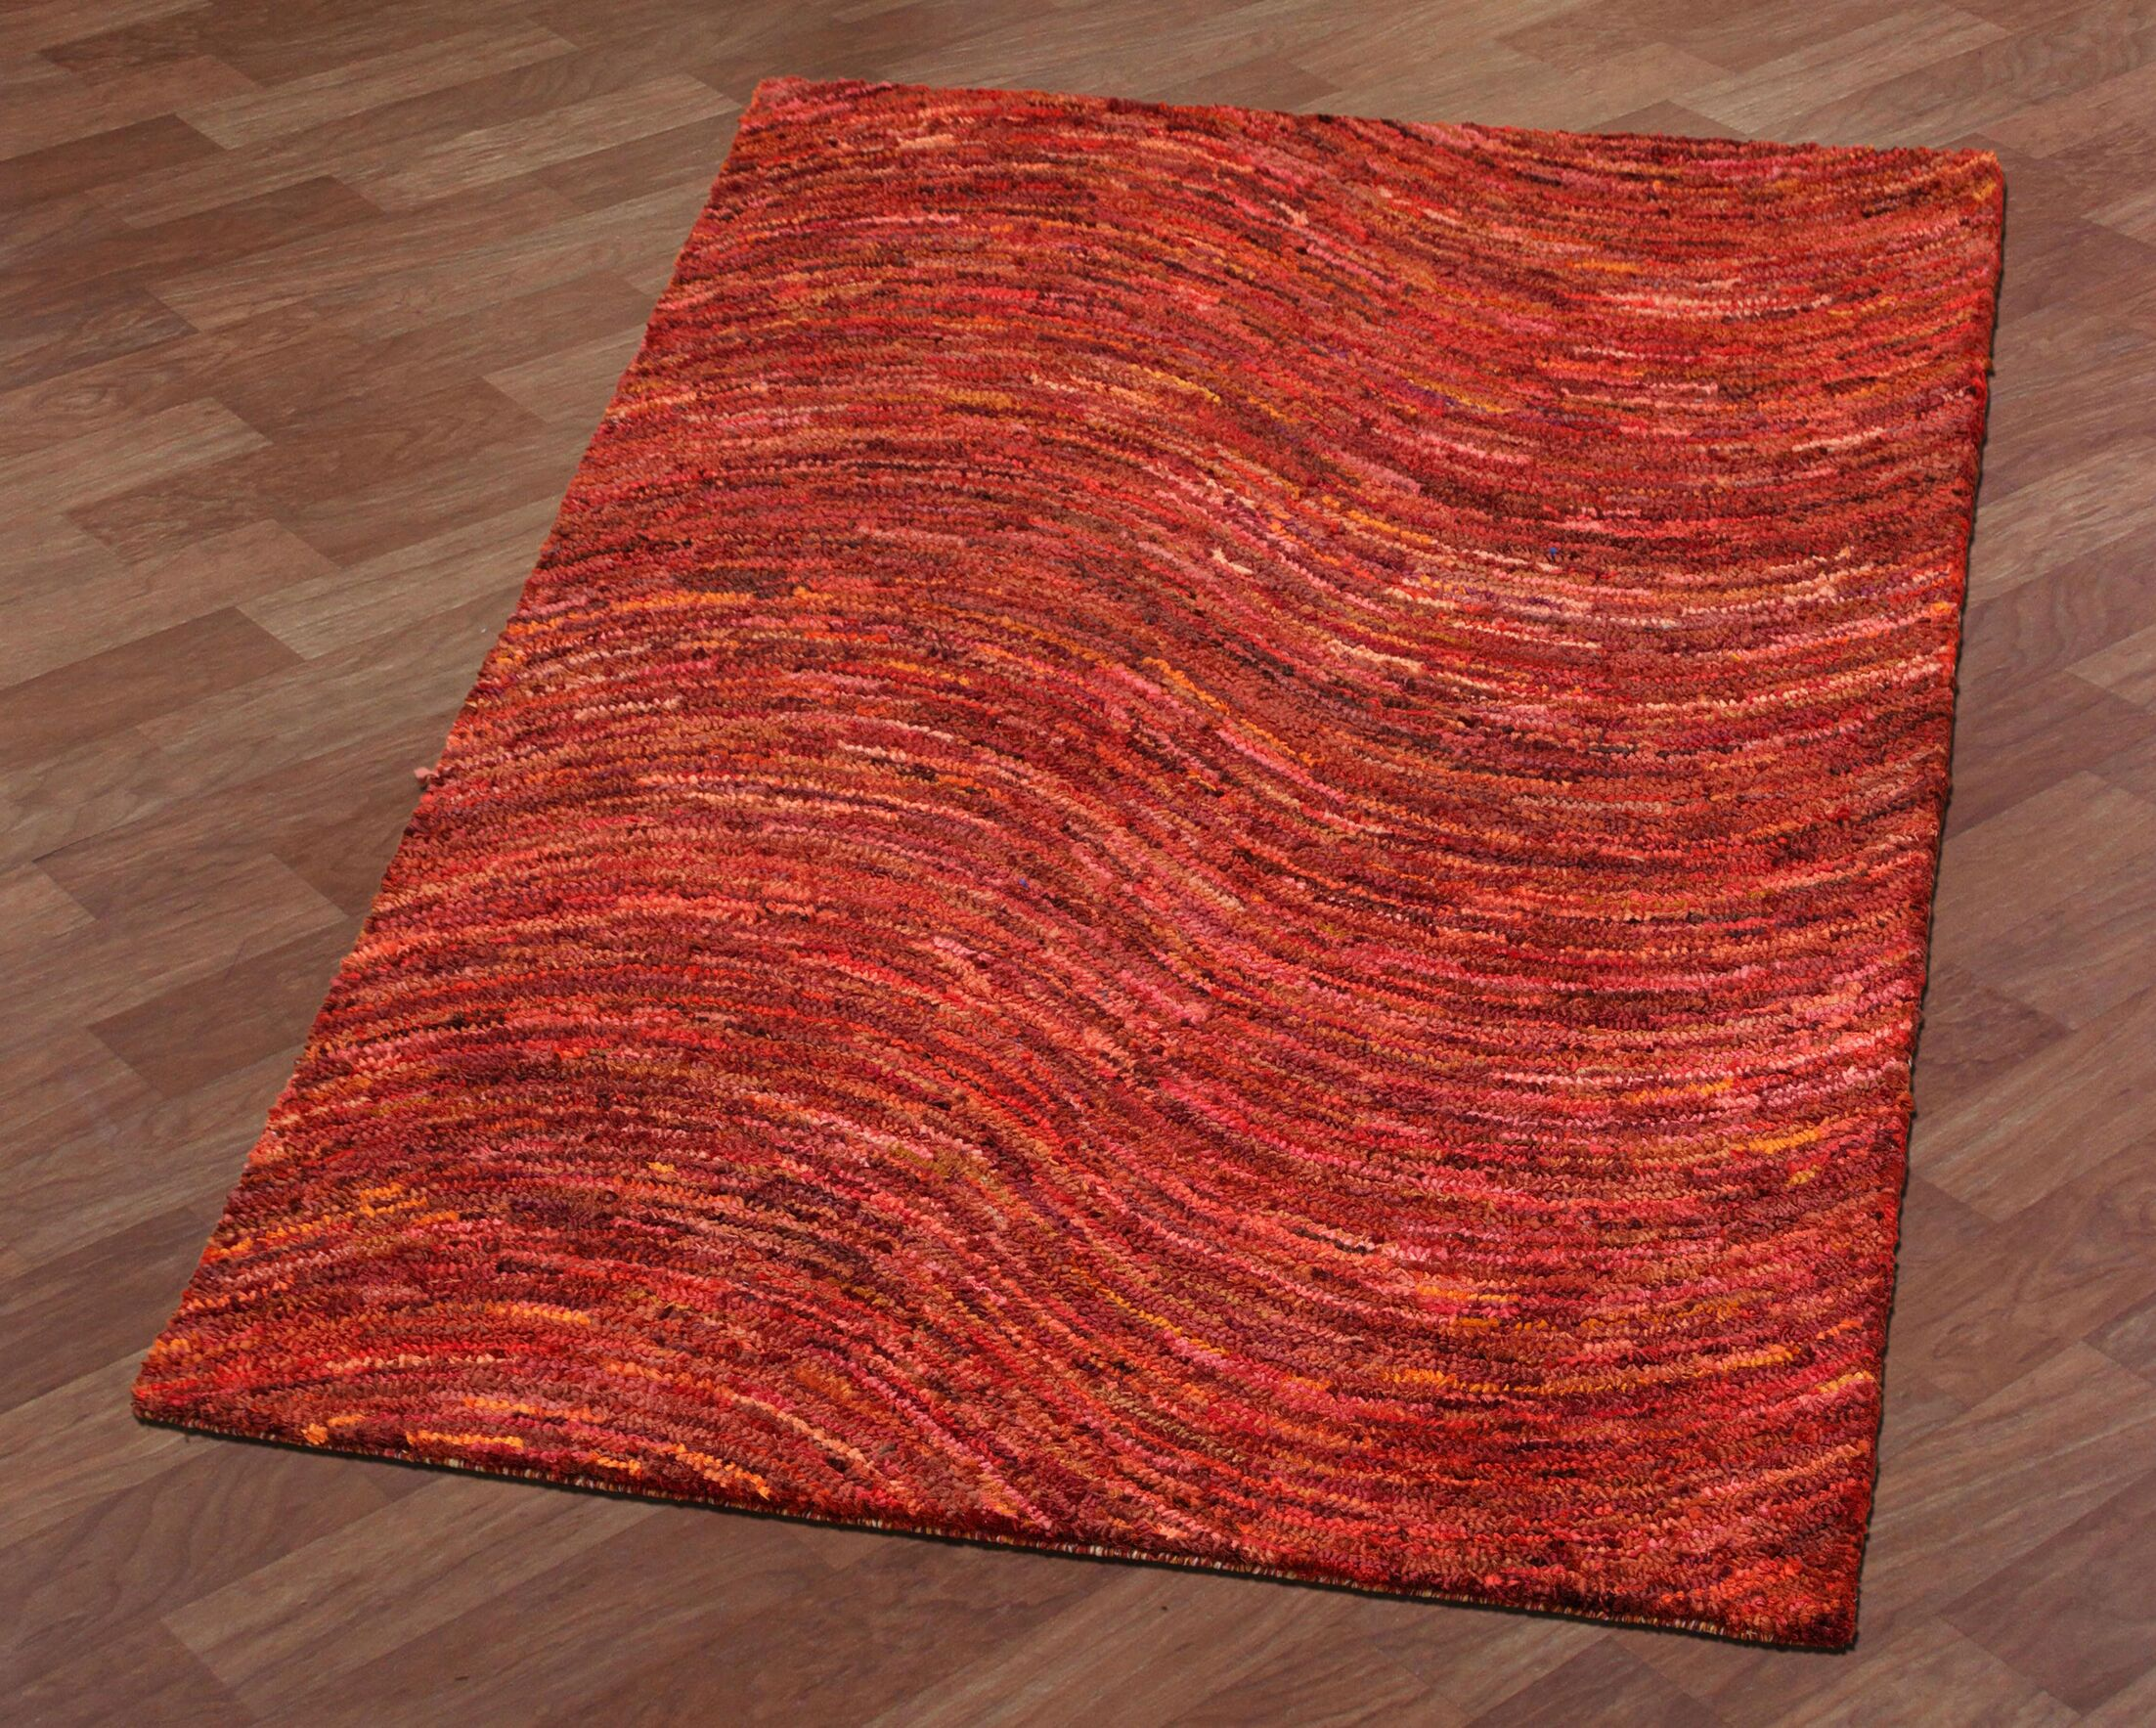 Brilliant Ribbon Wave Hand-Tufted Red Area Rug Rug Size: 4' x 6'